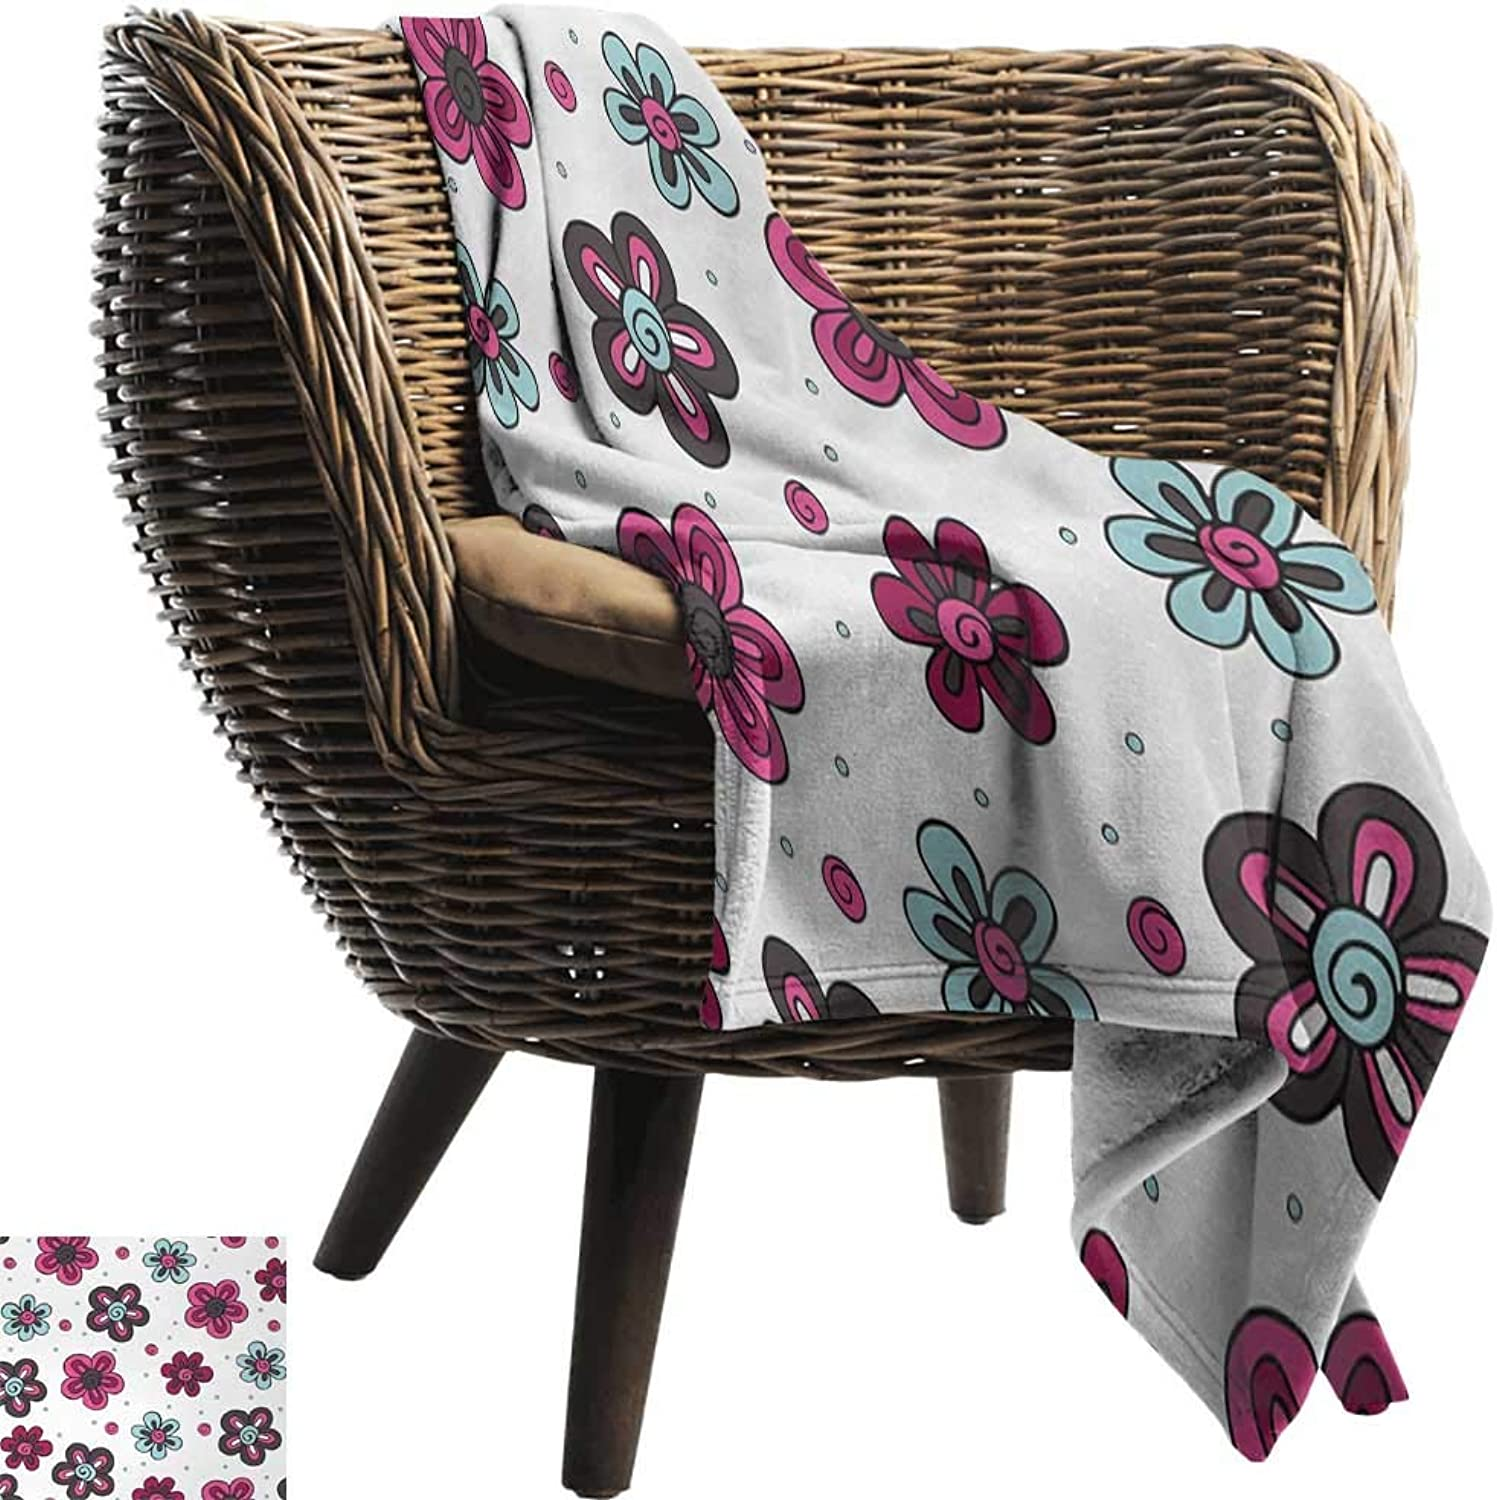 AndyTours Blanket,Floral,Cute Florets Buds Kids Girls Stylish Pattern Summer Beauty Art Print,Magenta Grey Light bluee,Flannel Blankets Super Soft Warm Thick Blanket for Home 50 x70